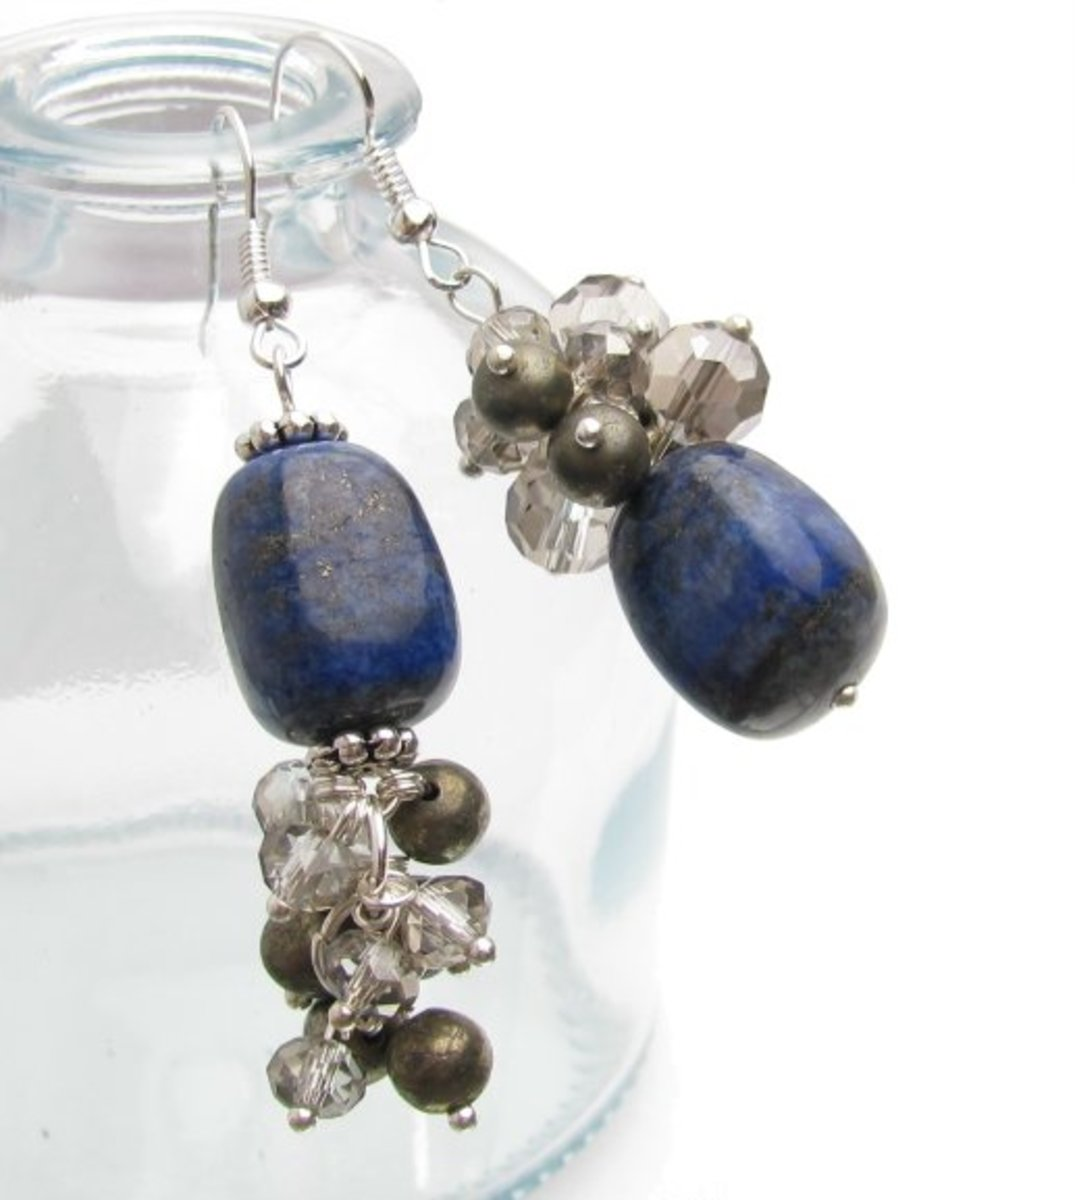 How to Make Beaded Cluster Earrings (Two Ways)